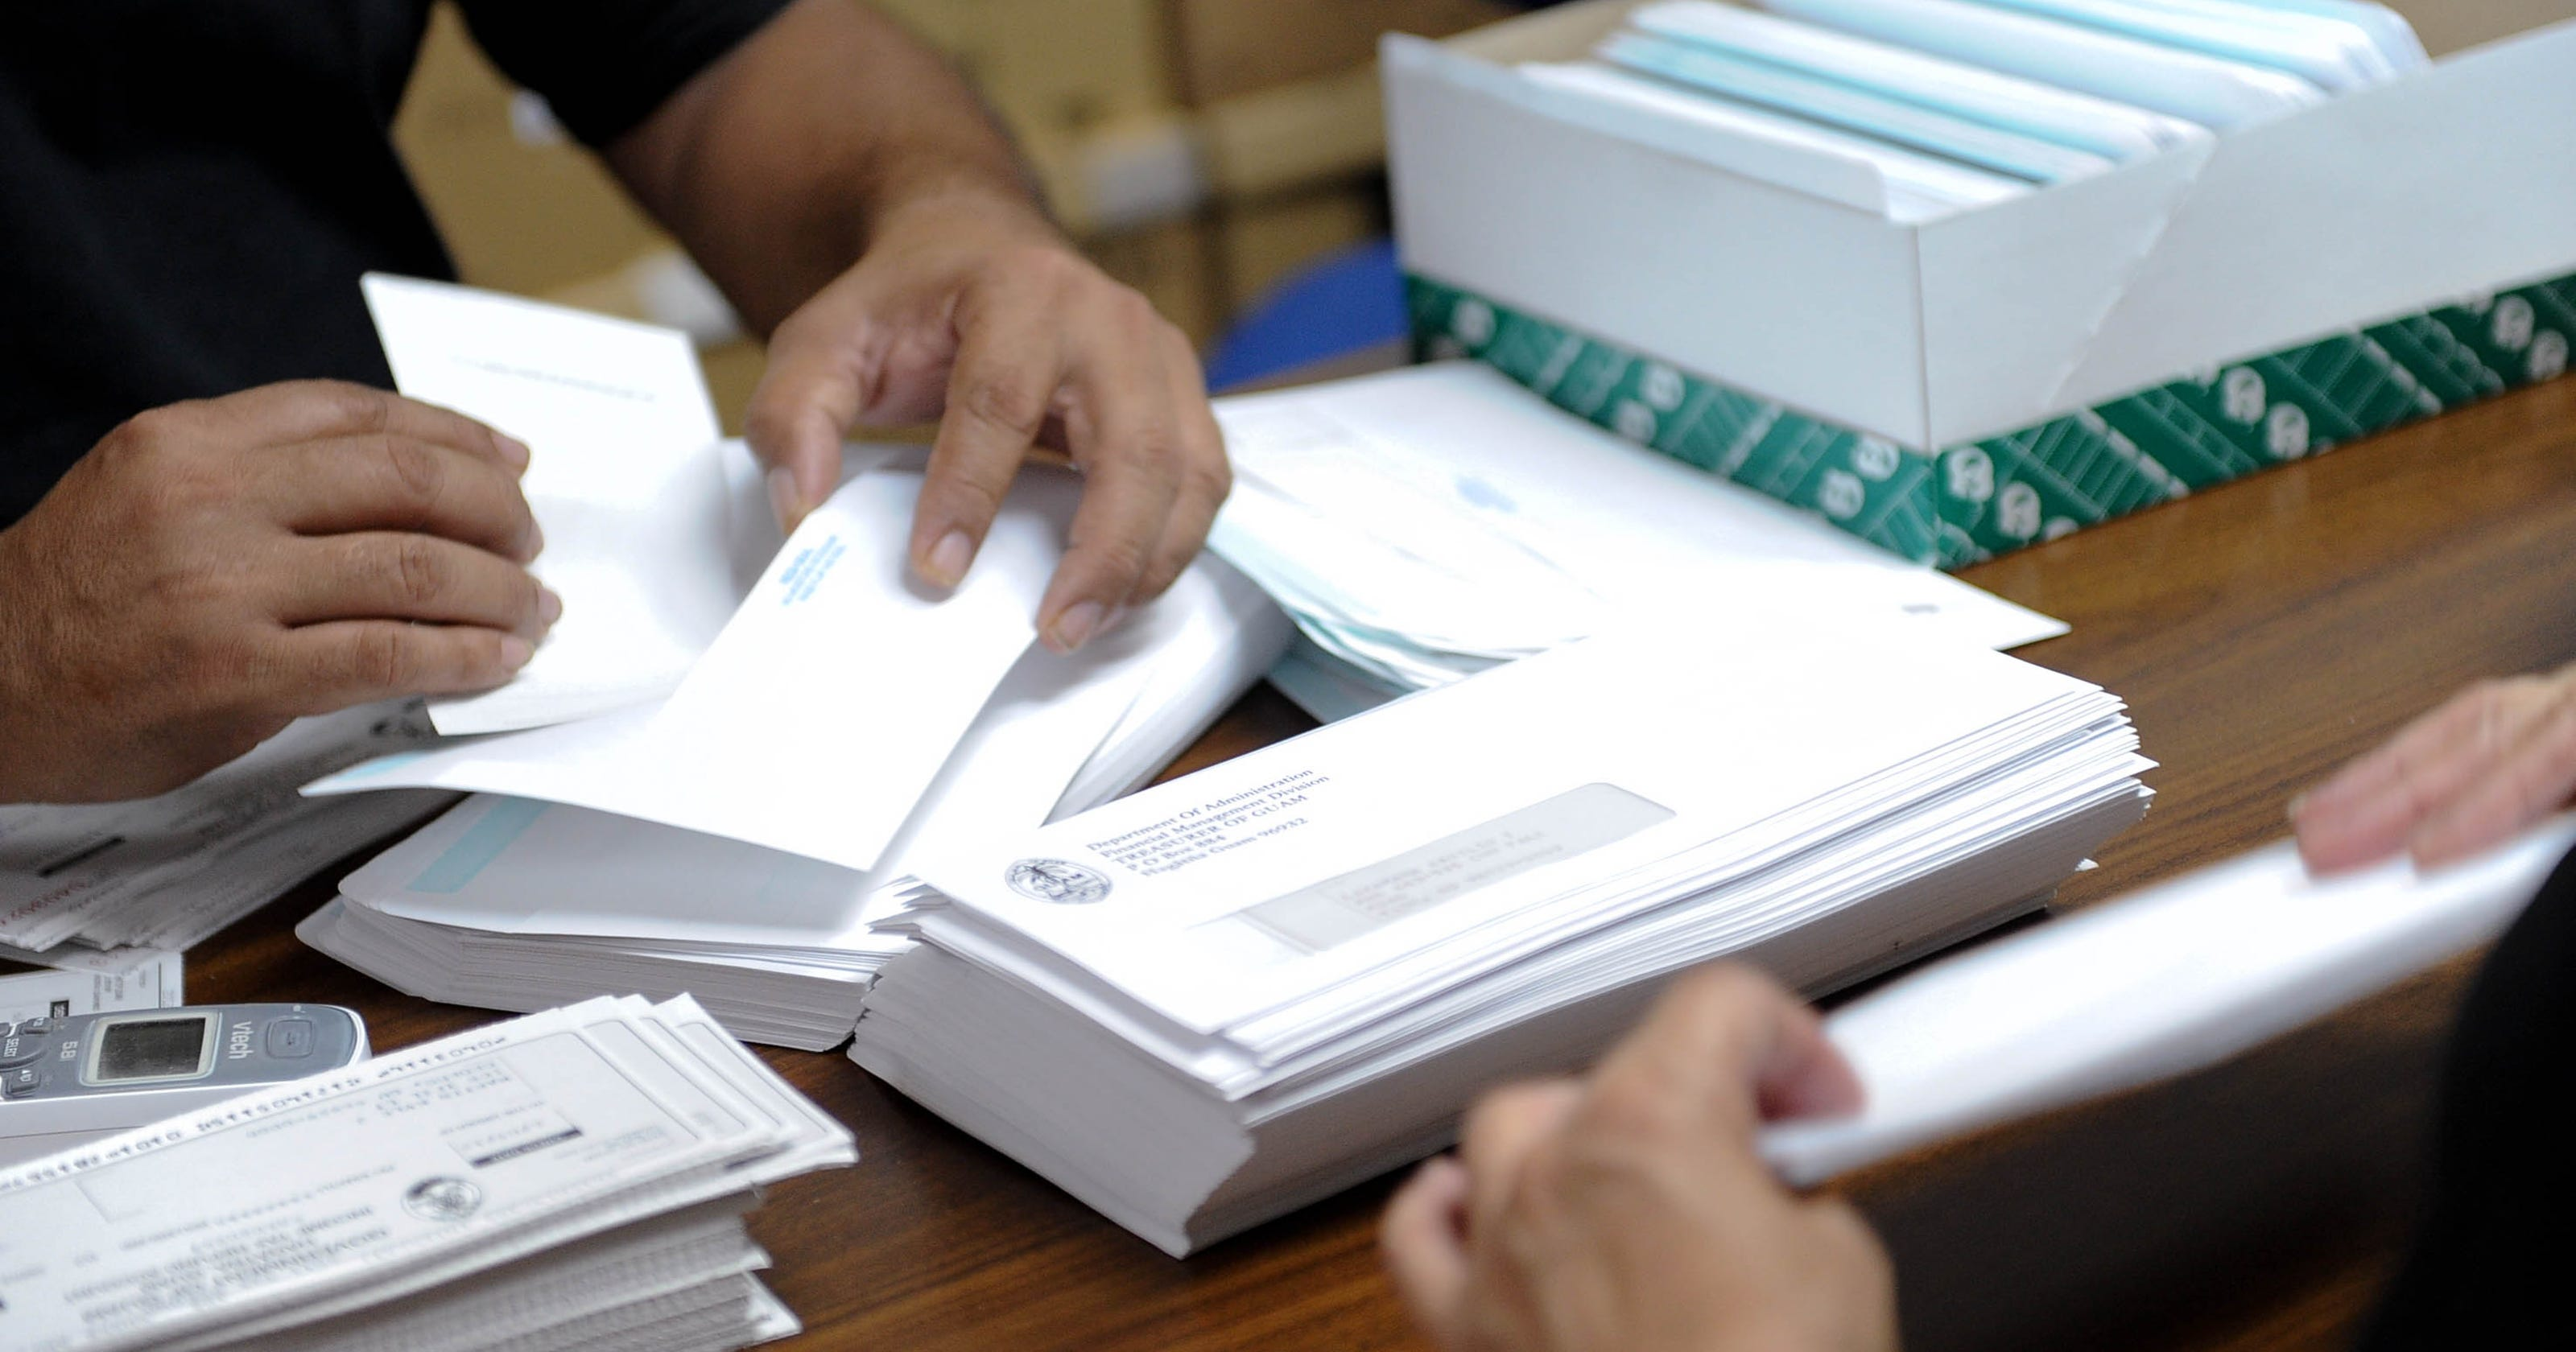 Reasons cited by GovGuam for tax refund delay